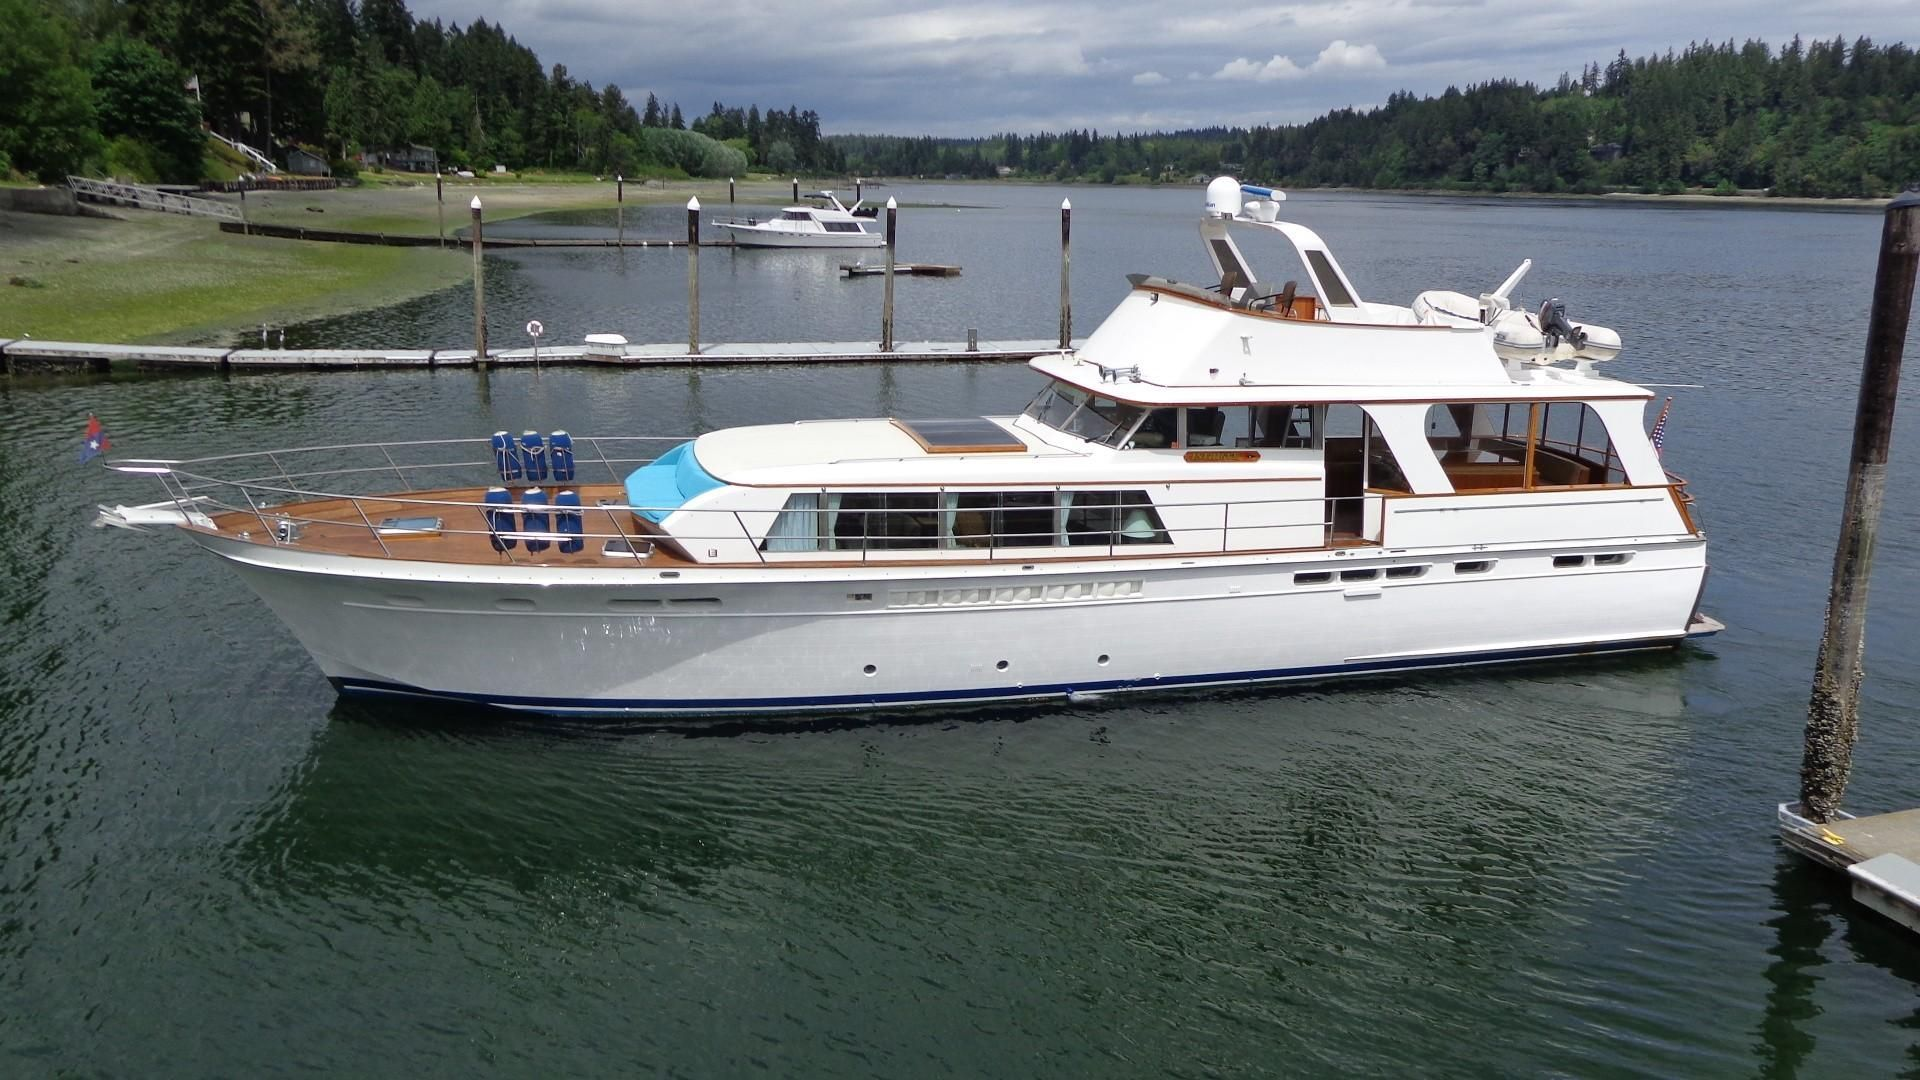 46+ Chris craft constellation for sale ideas in 2021